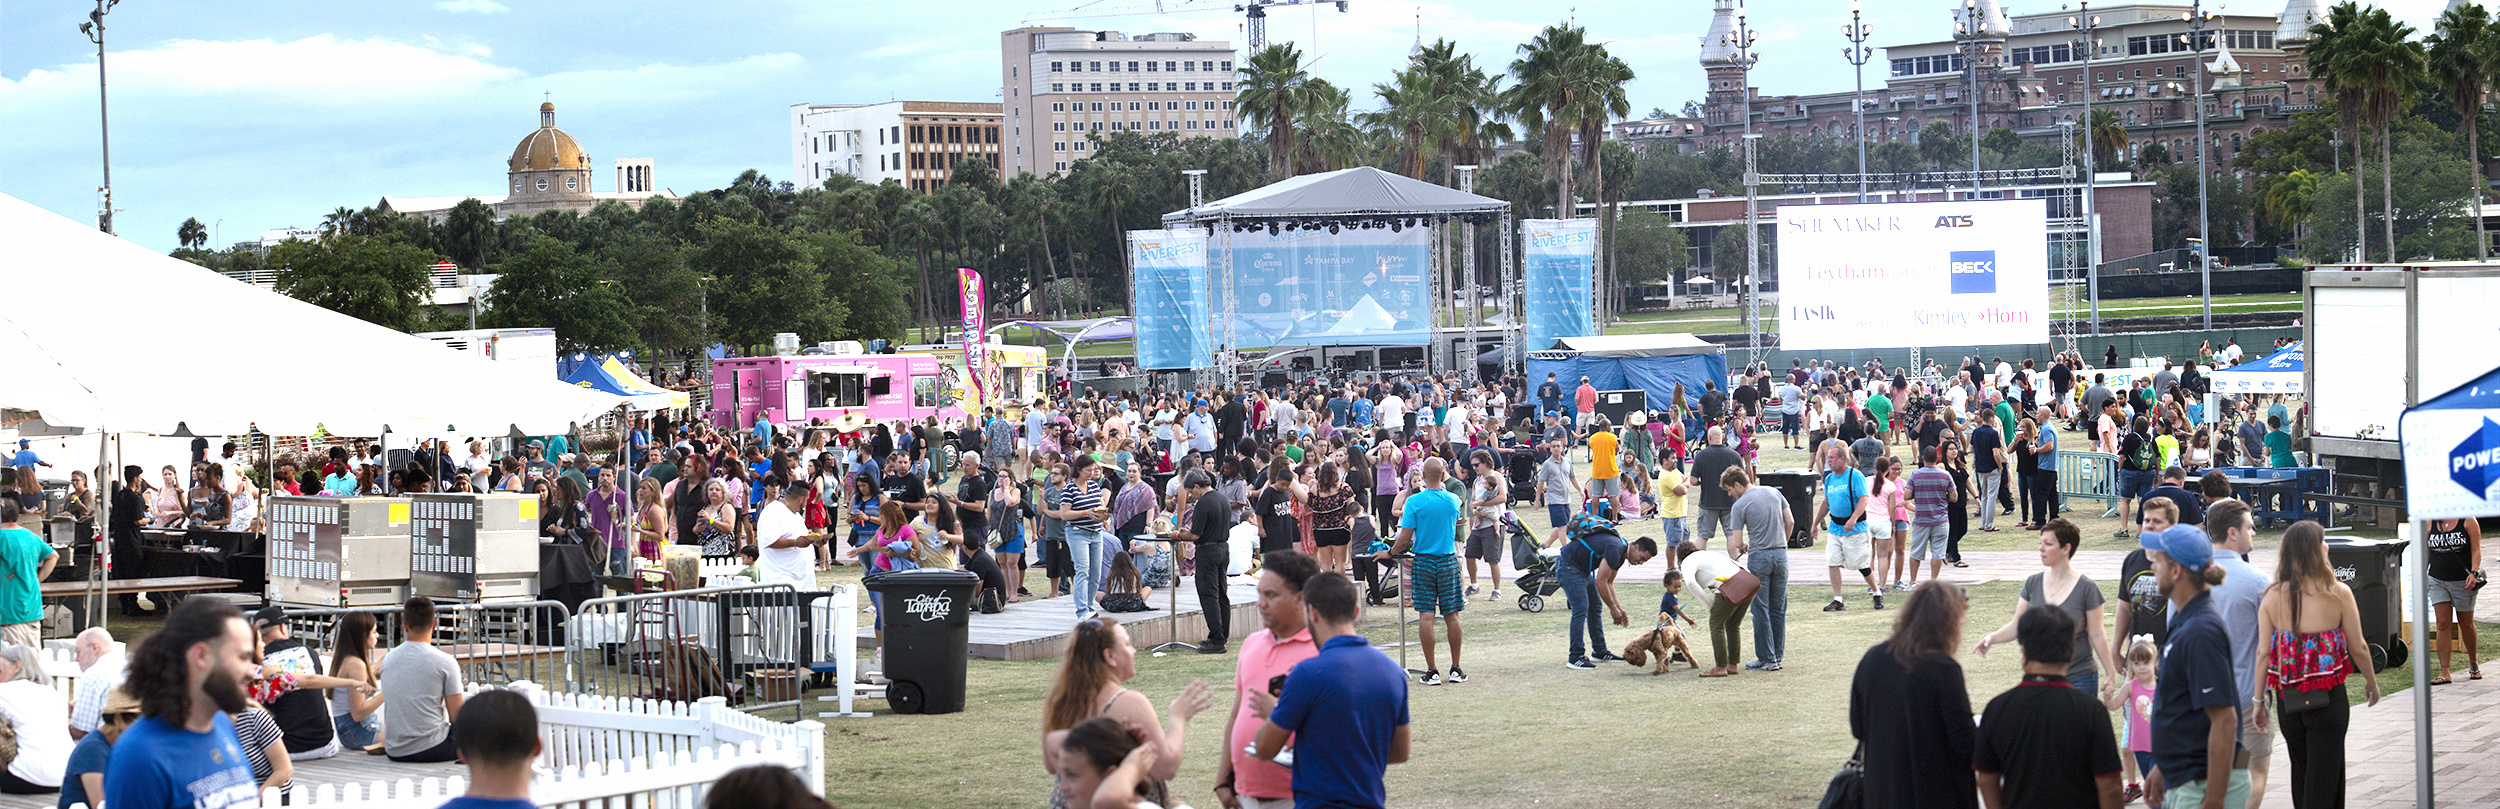 Thousands of people joined their friends and neighbors and Weiner dogs to party along Tampa's Riverwalk for the 2018 Tampa Riverfest